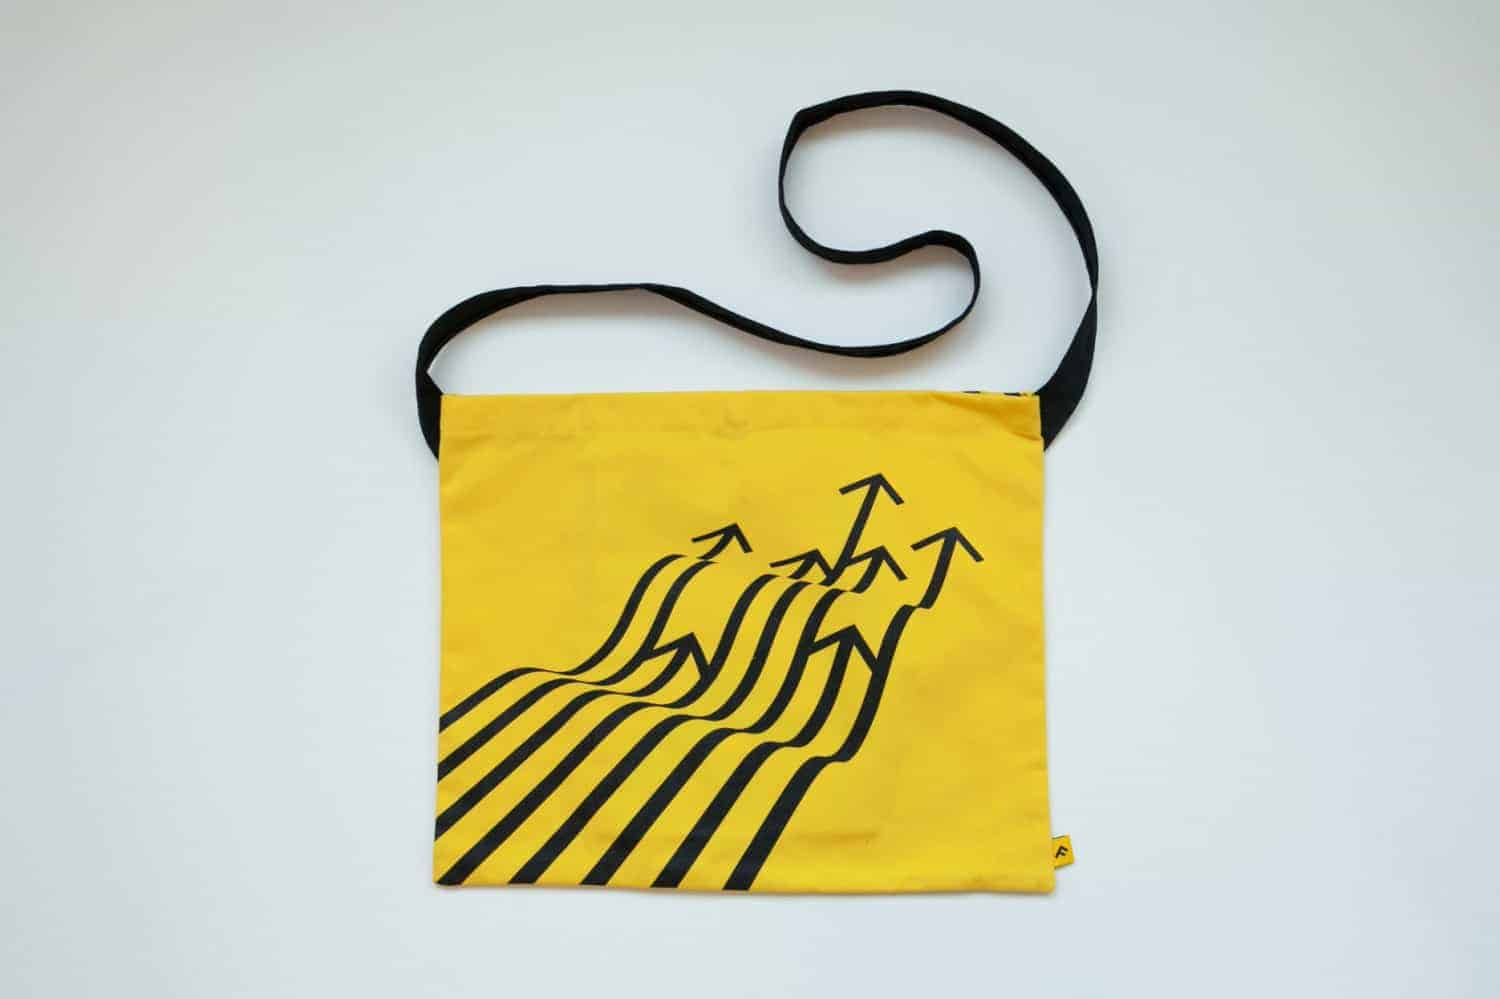 Design elements and principles. Design based on lines, by Tom Crabtree, on a yellow courier bag.